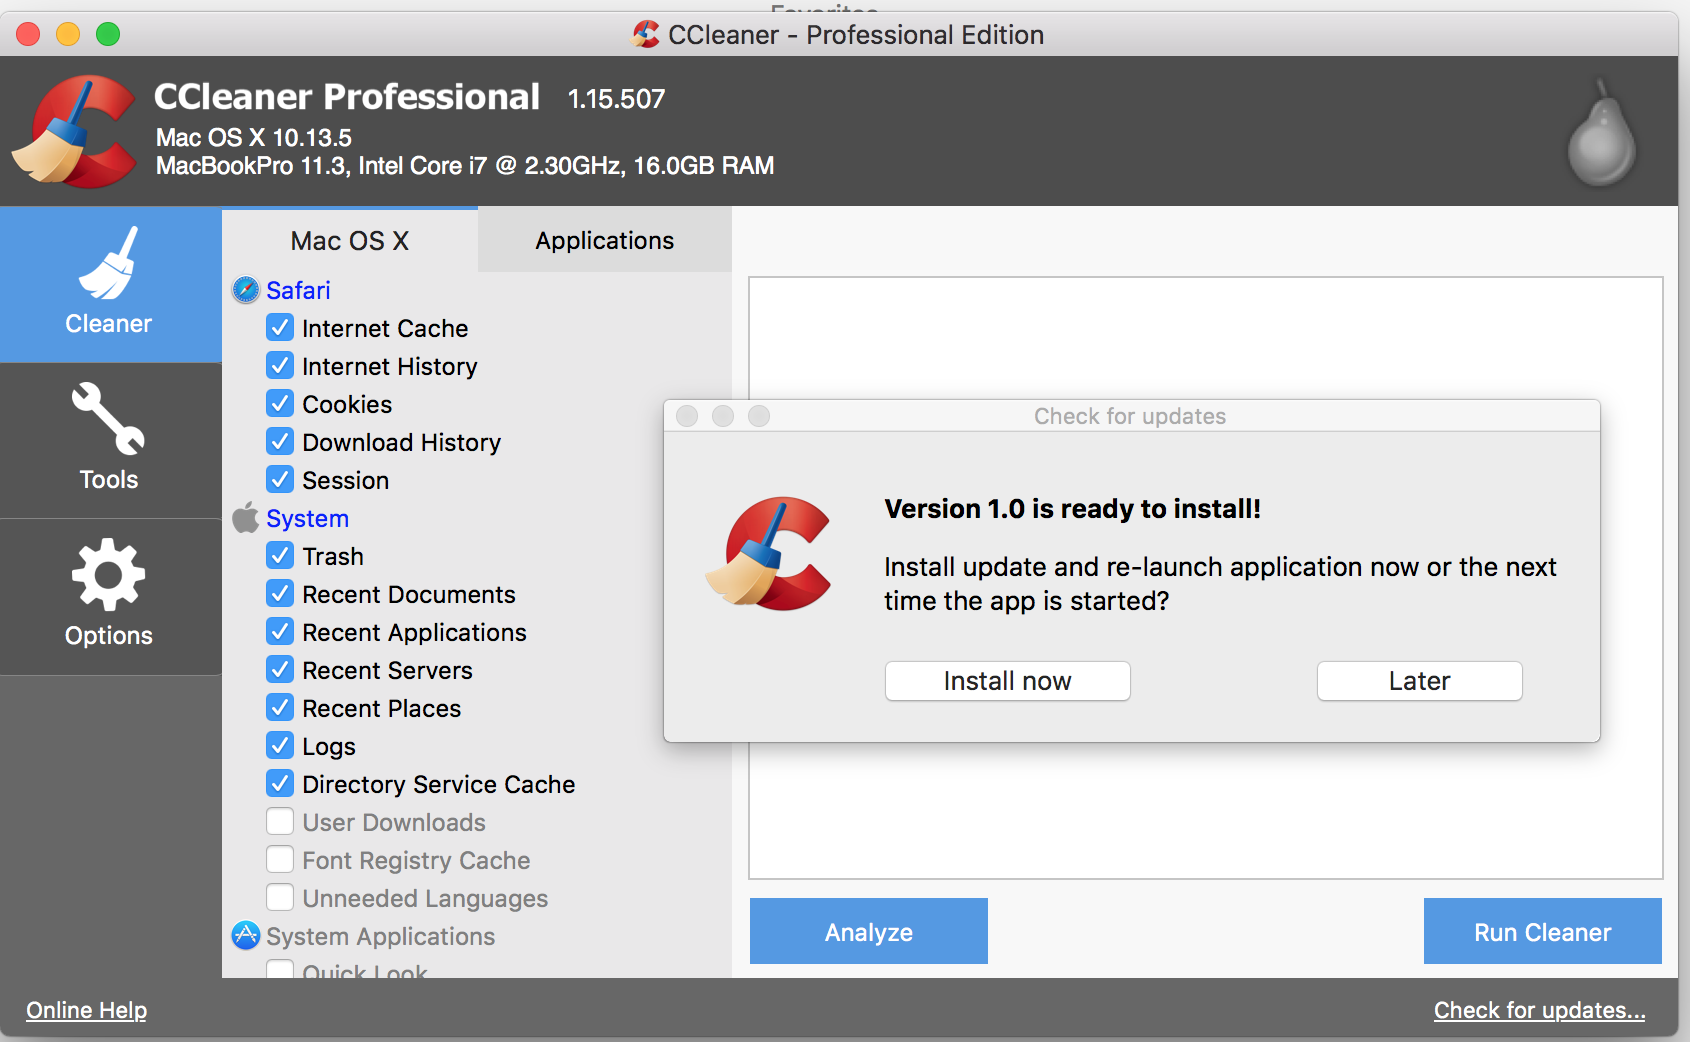 CCleaner Pro 5.64.7613 Crack + New Activation Key 2020 Full Version